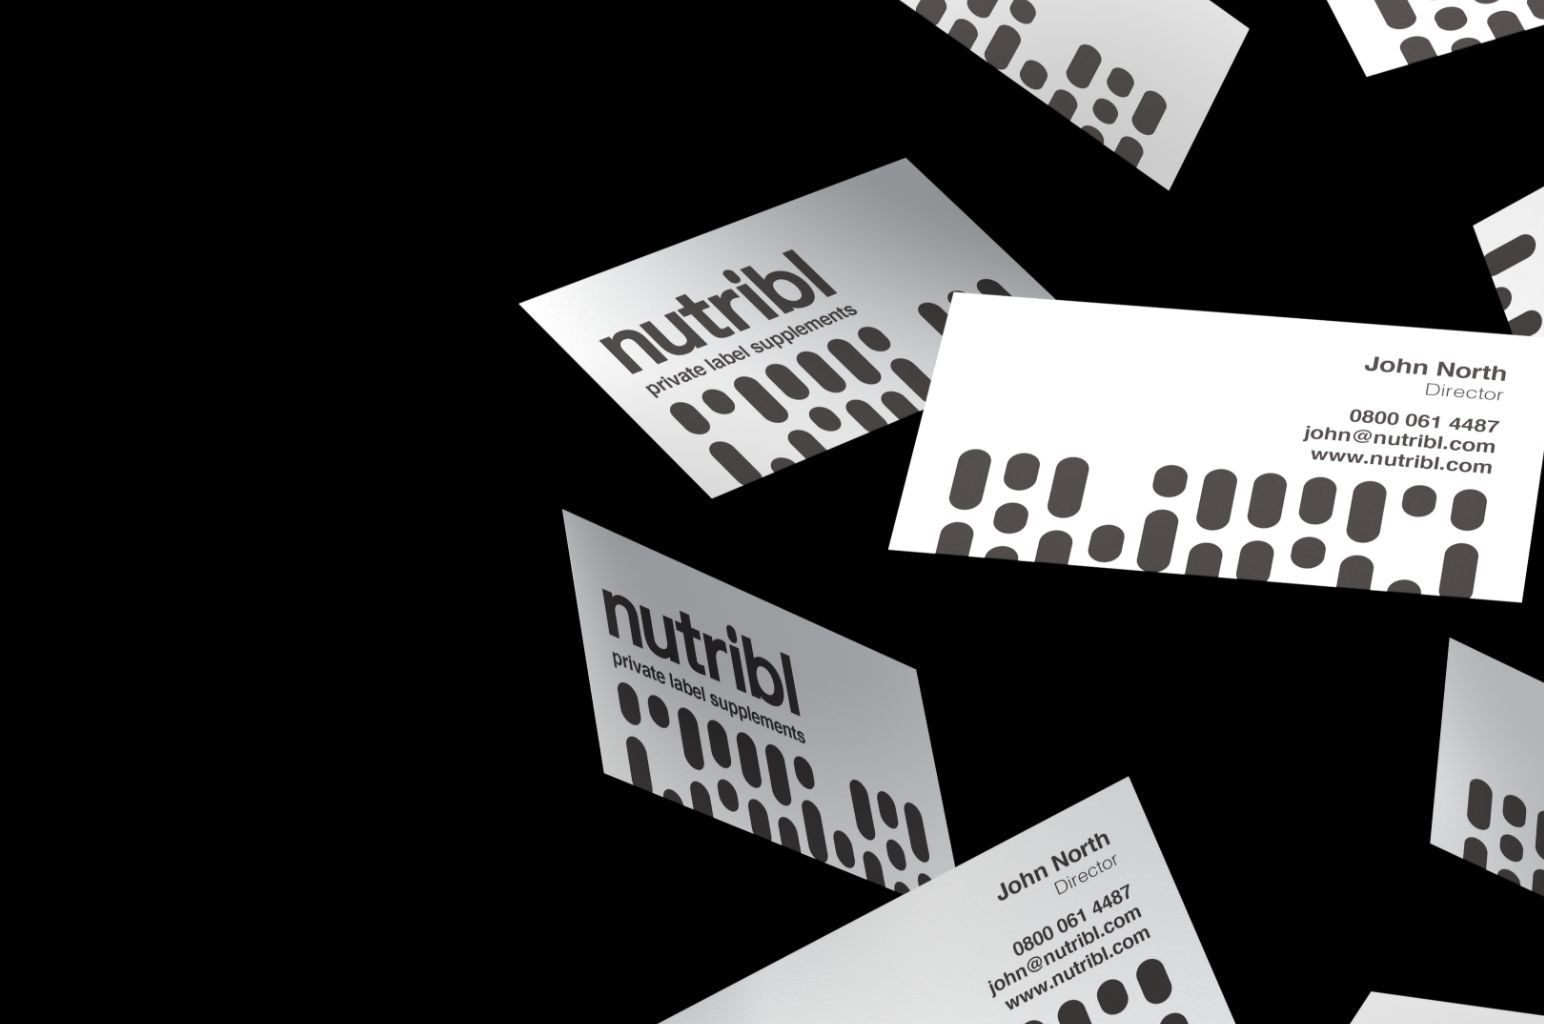 Wonderstuff Behind the New Brand and Packaging Design for Nutribl